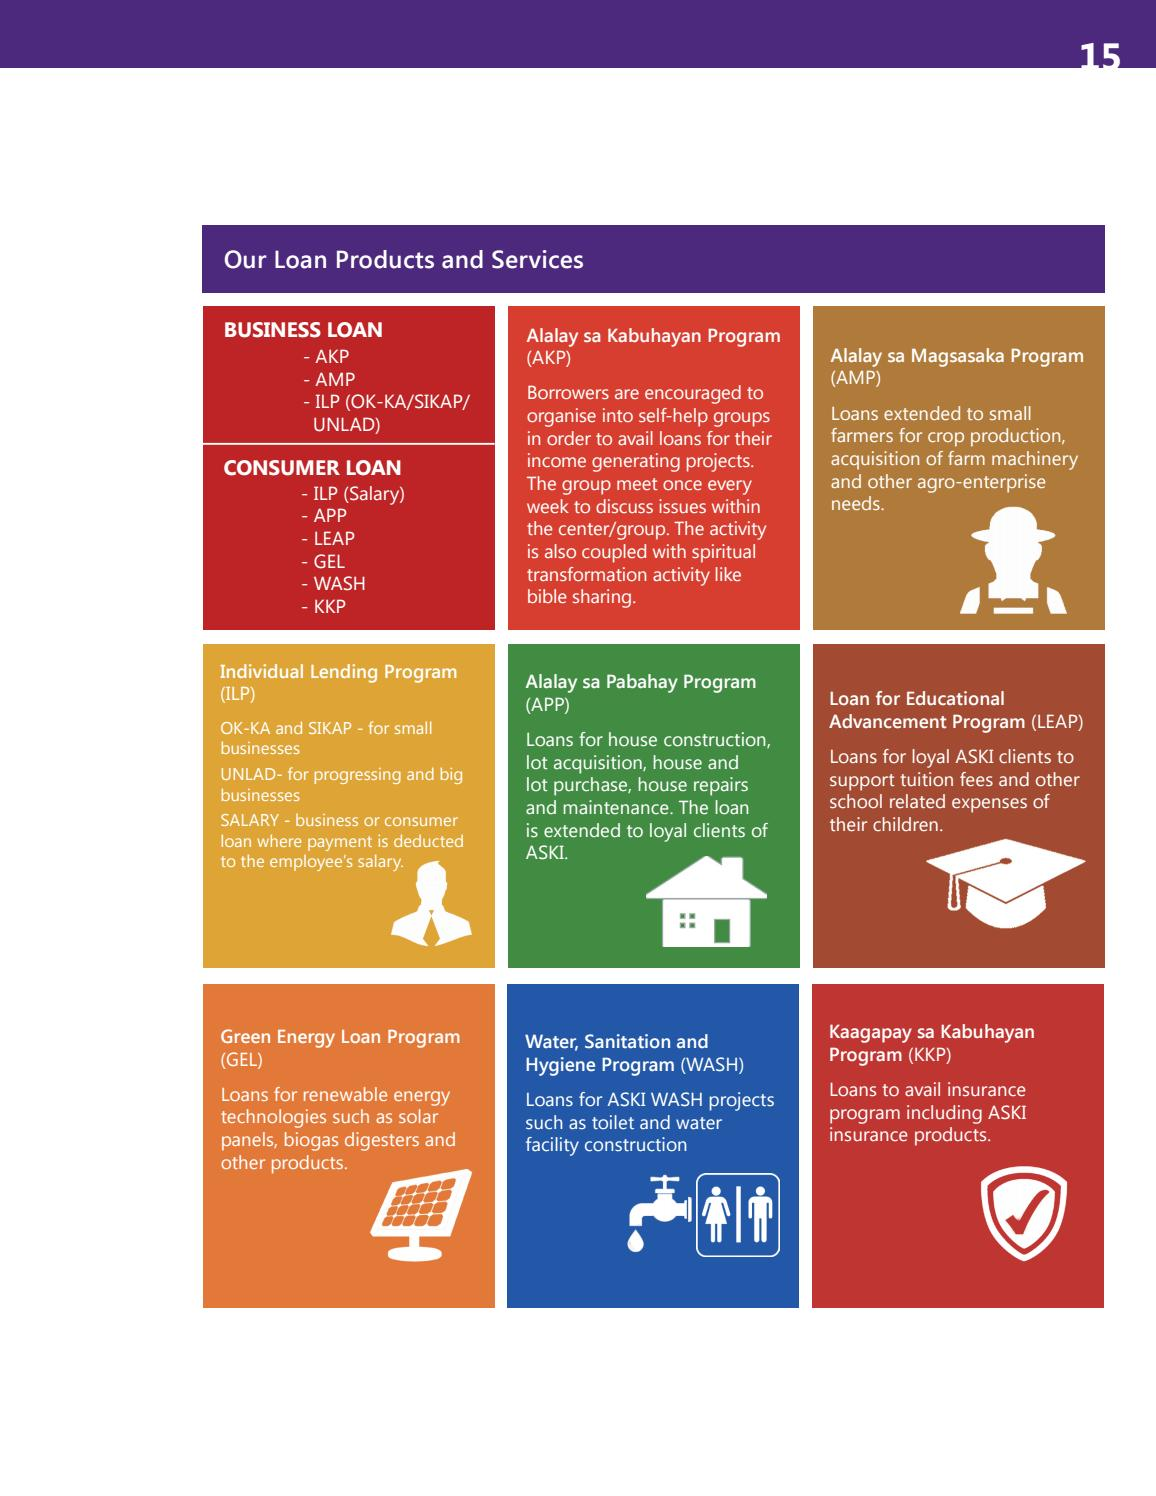 ASKI Integrated Annual and Sustainability Report 2015 by